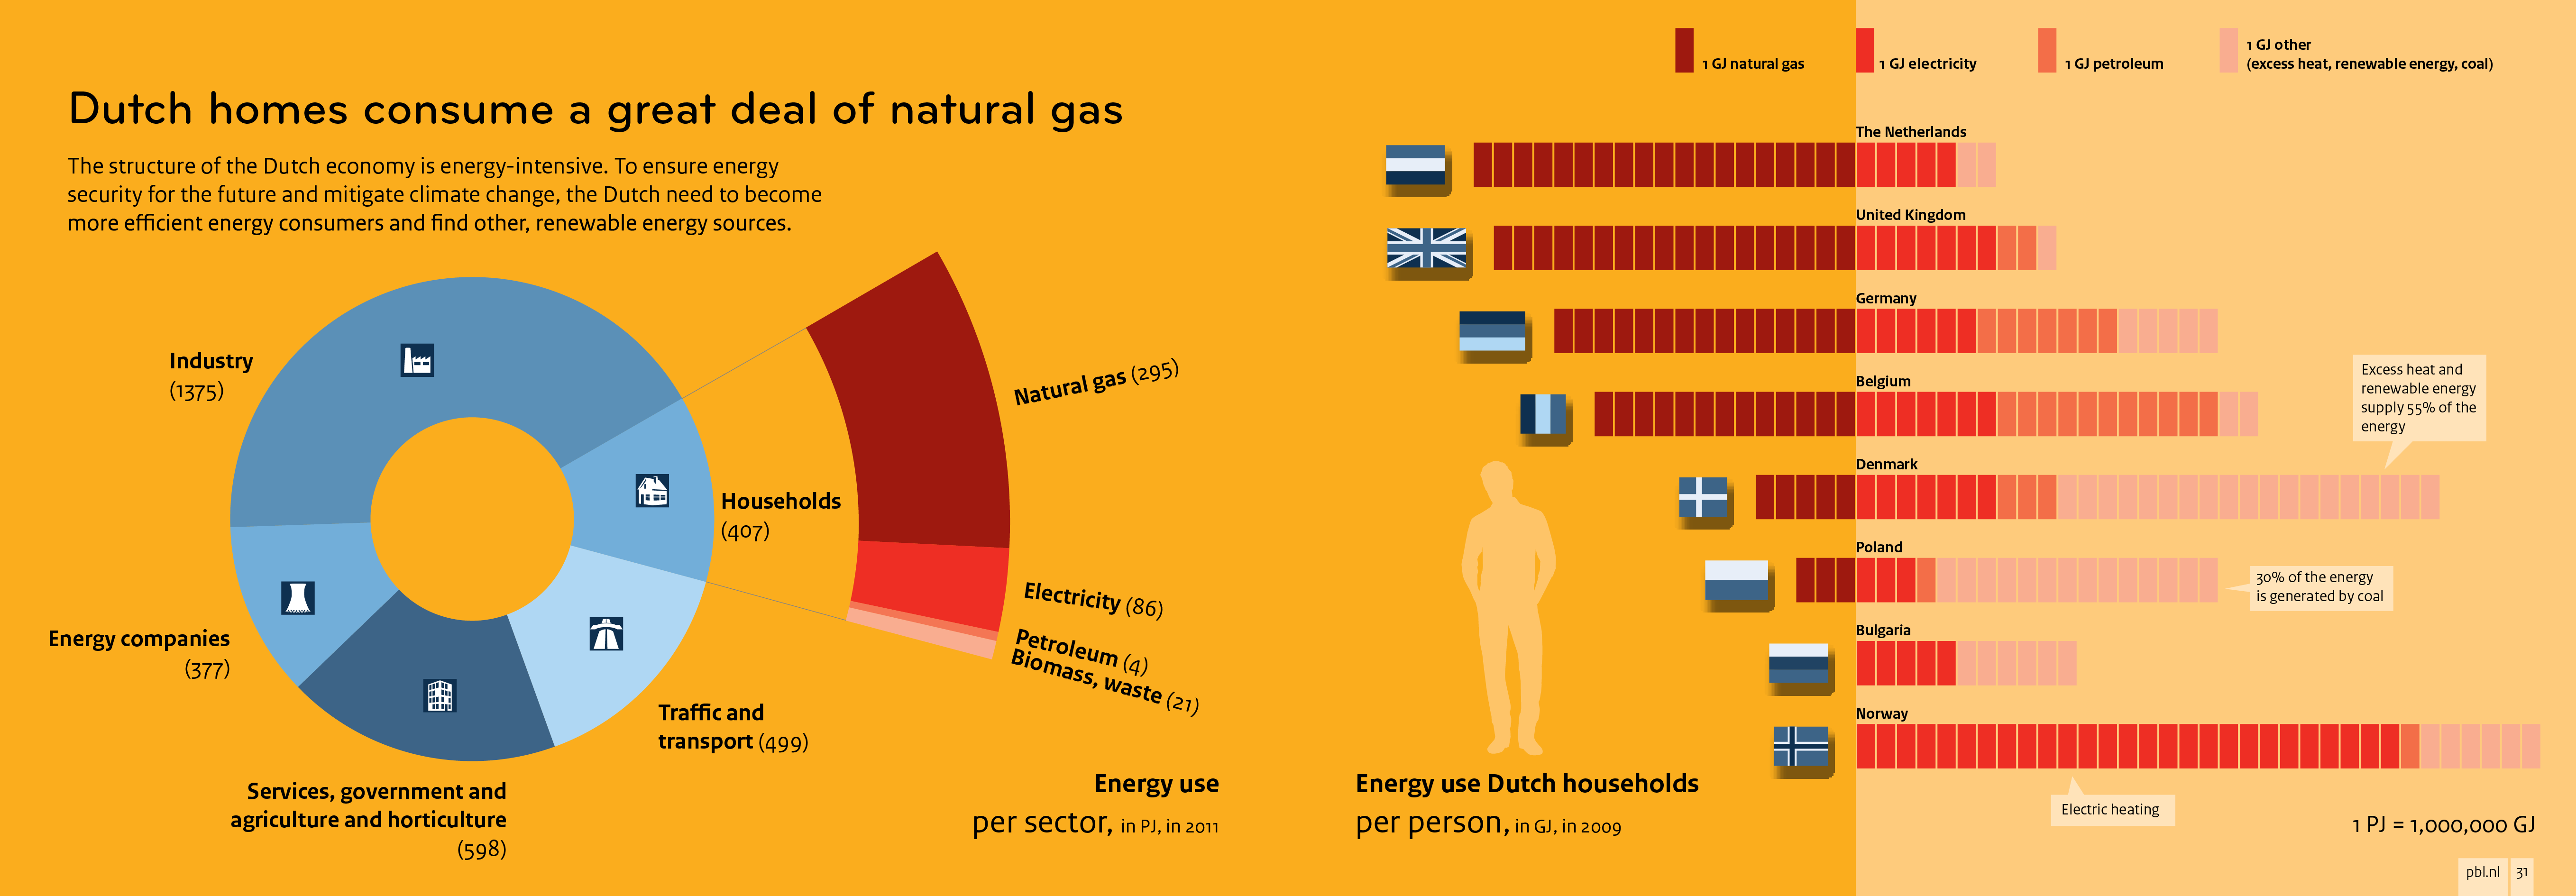 The structure of the Dutch economy is energy-intensive.